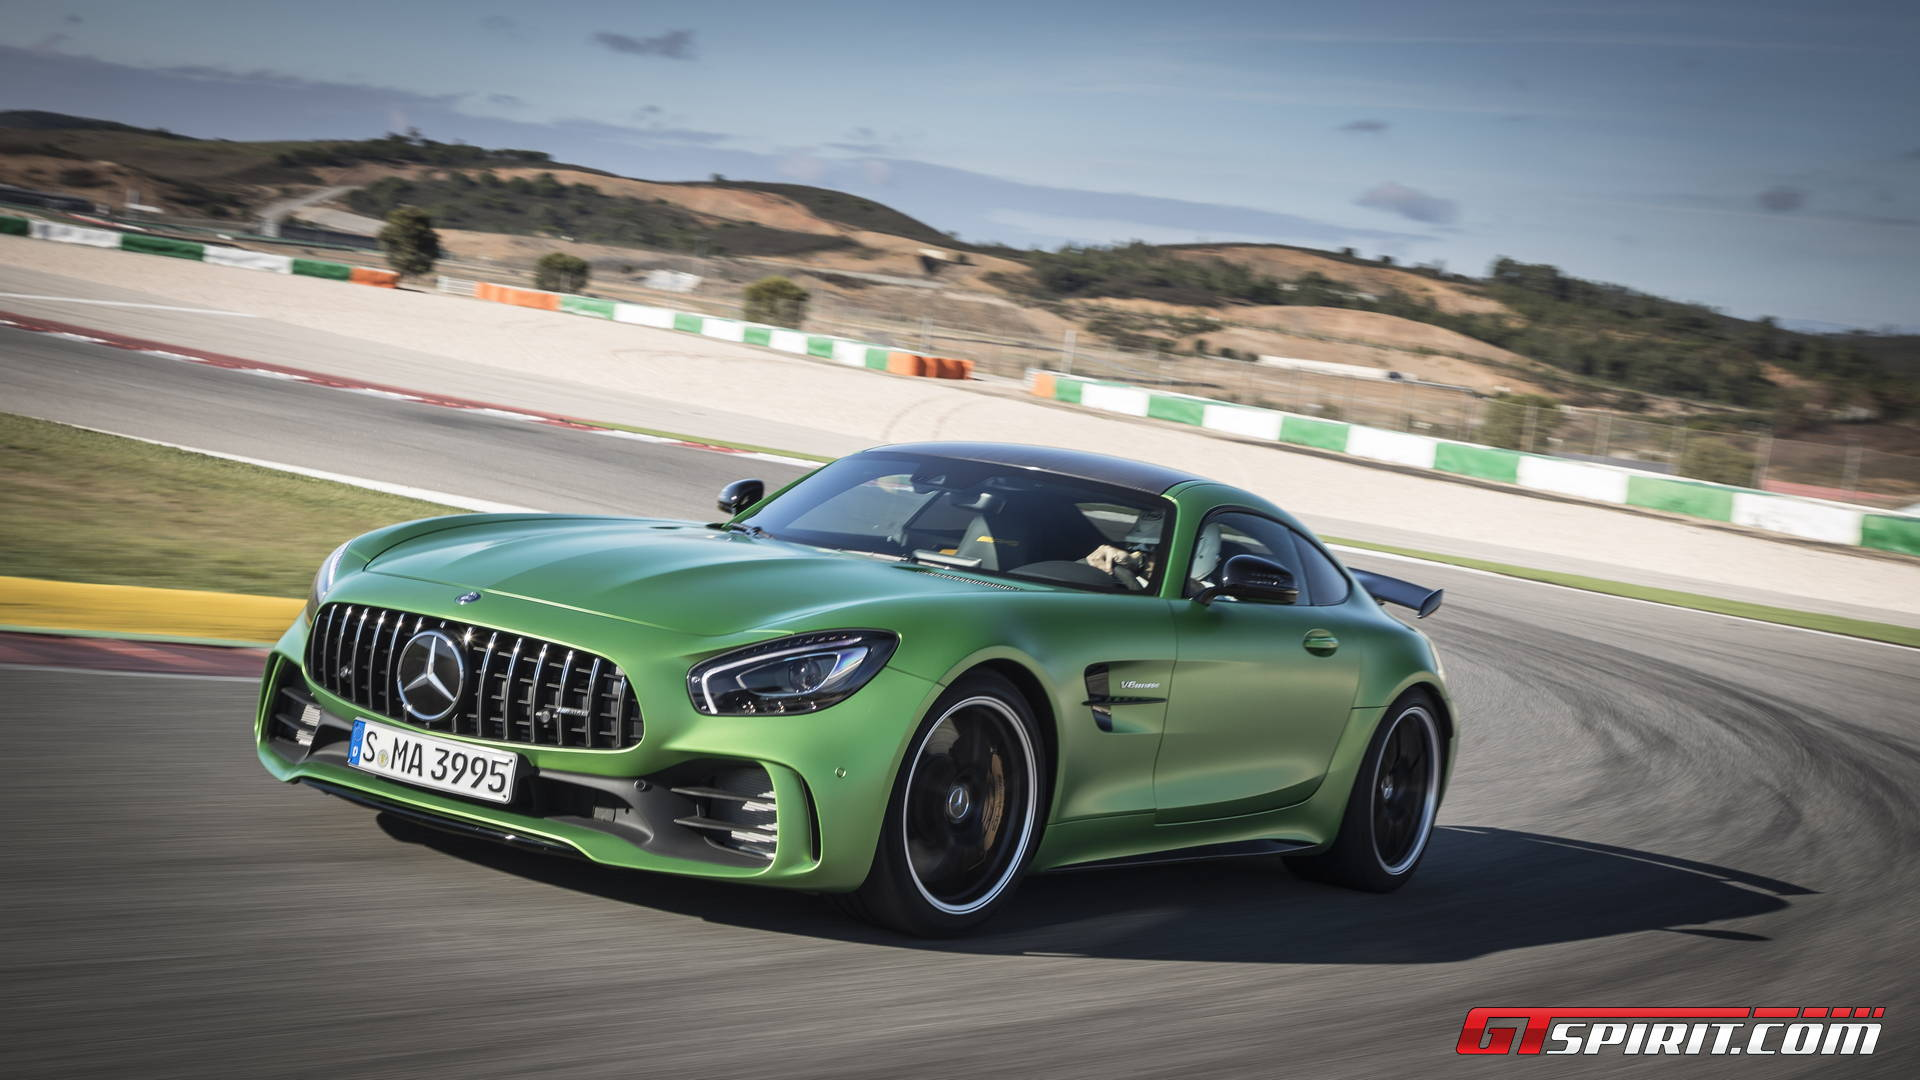 https://storage.googleapis.com/gtspirit/uploads/2017/01/Mercedes-AMG-GT-R-Race-Track-004.jpg